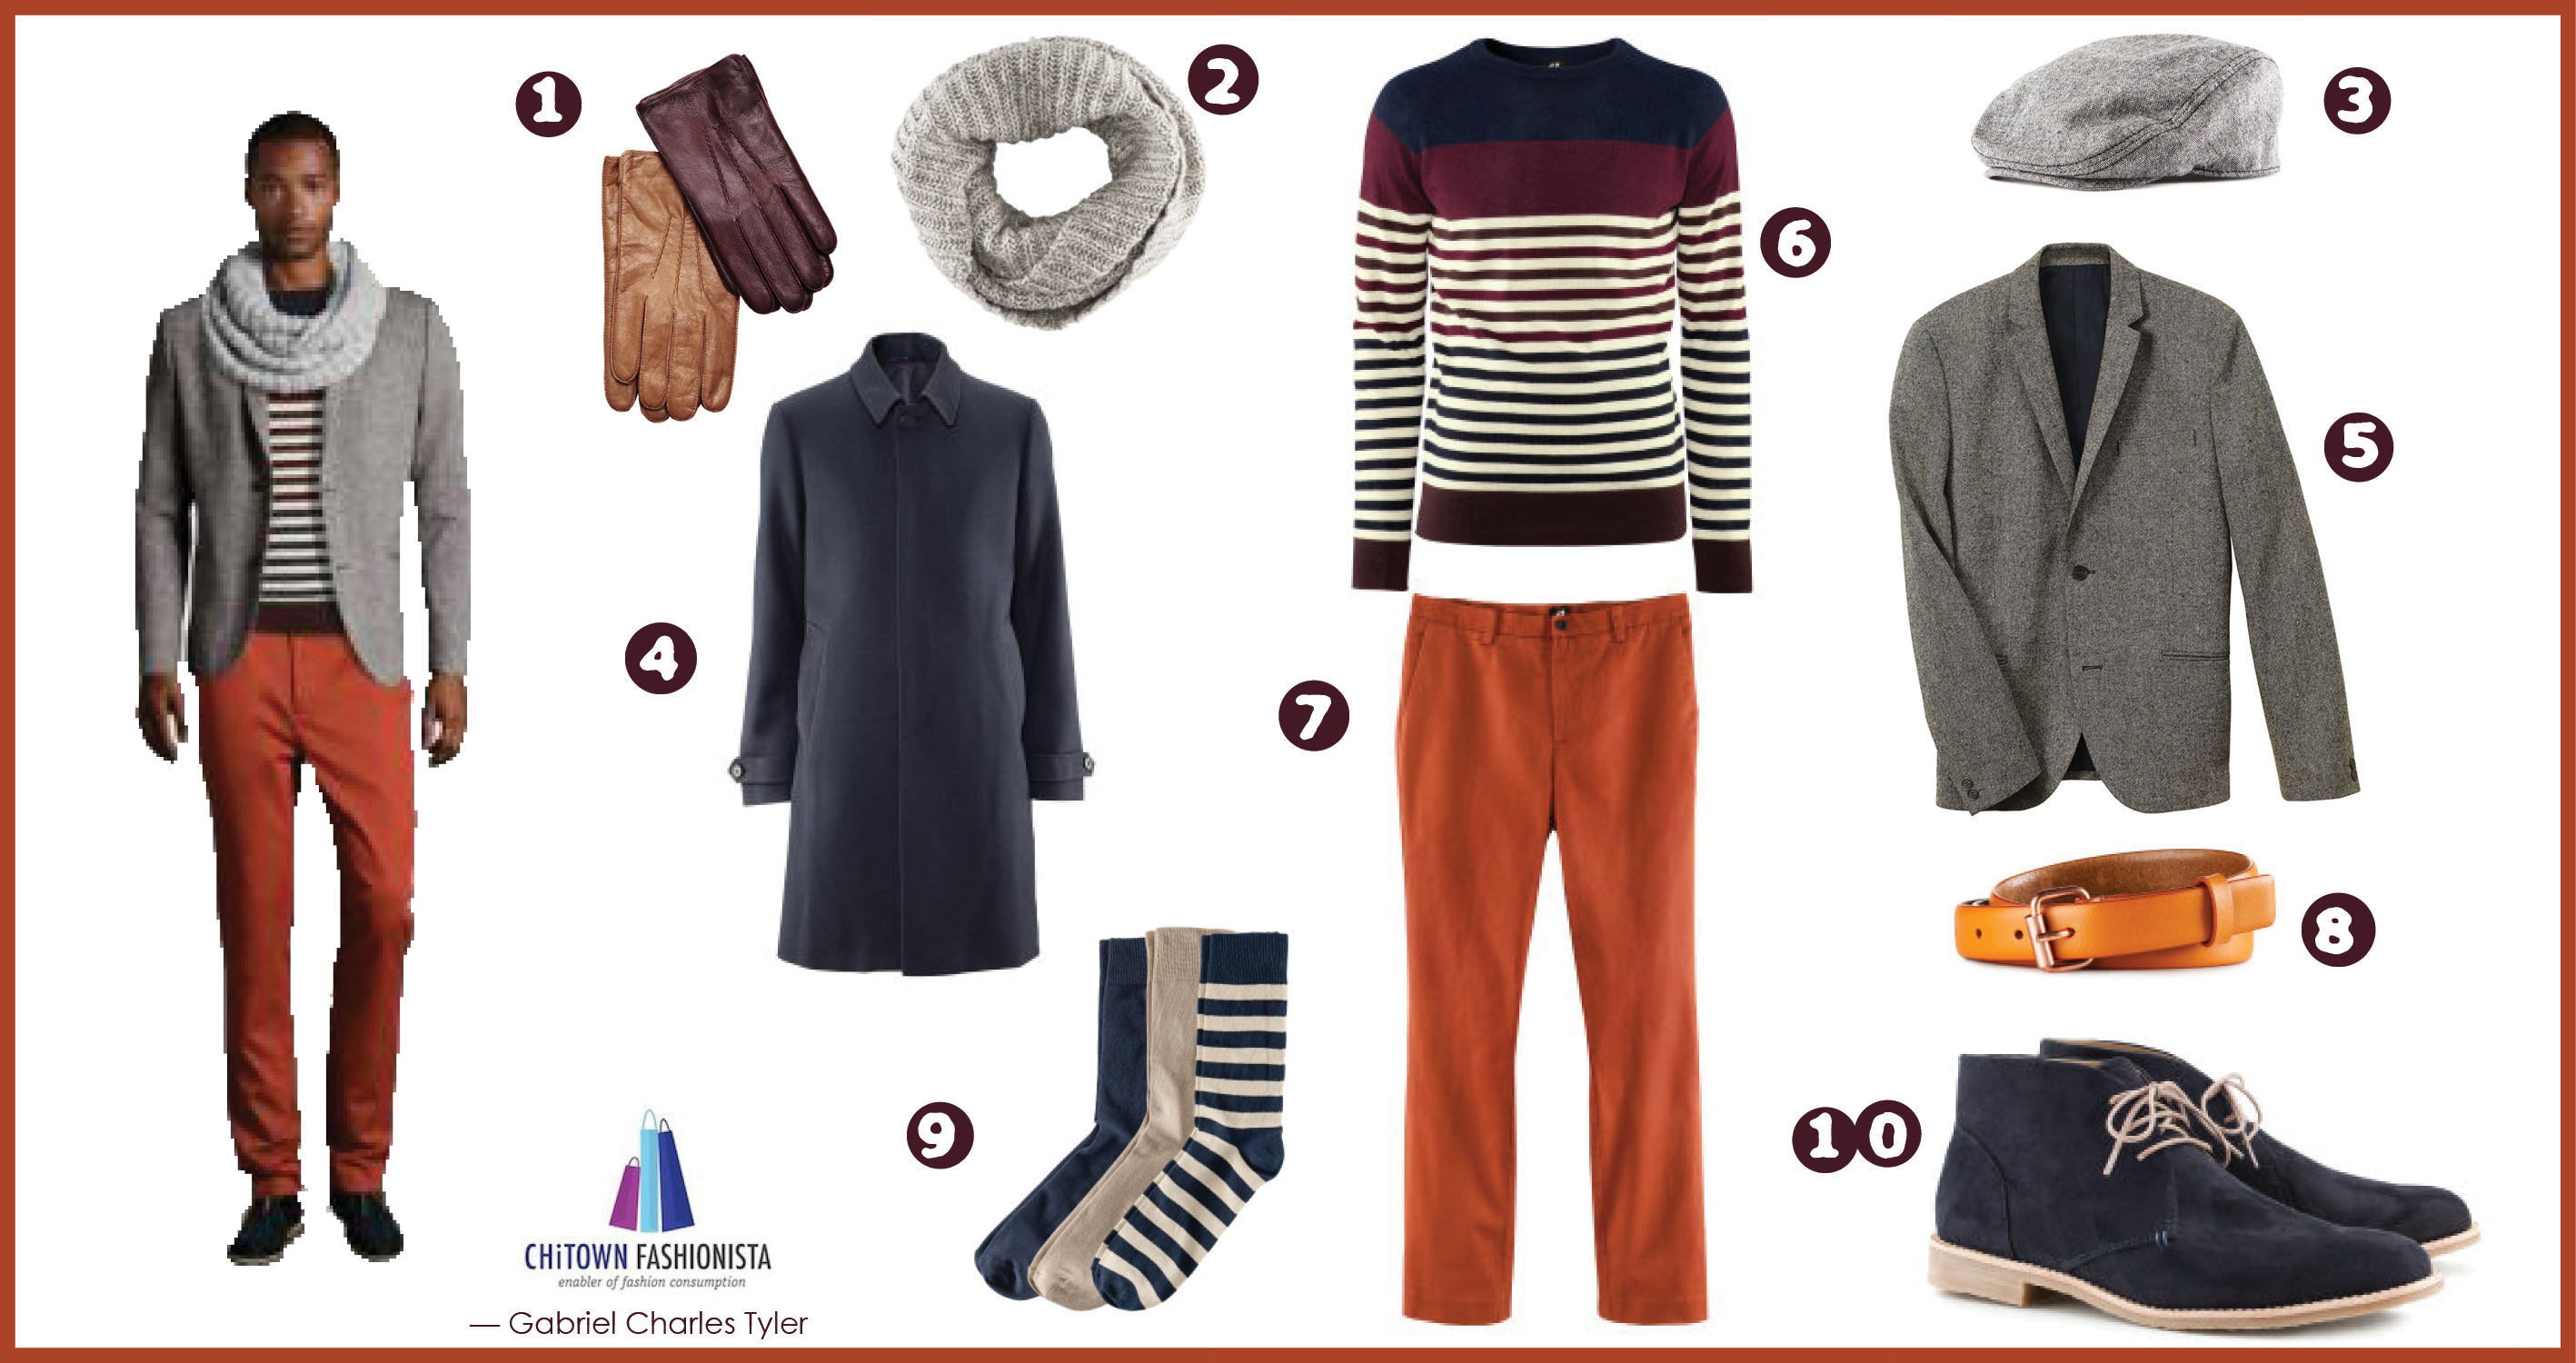 10 Foolproof Fall Trends for the Man in Need - Chitown Fashionista